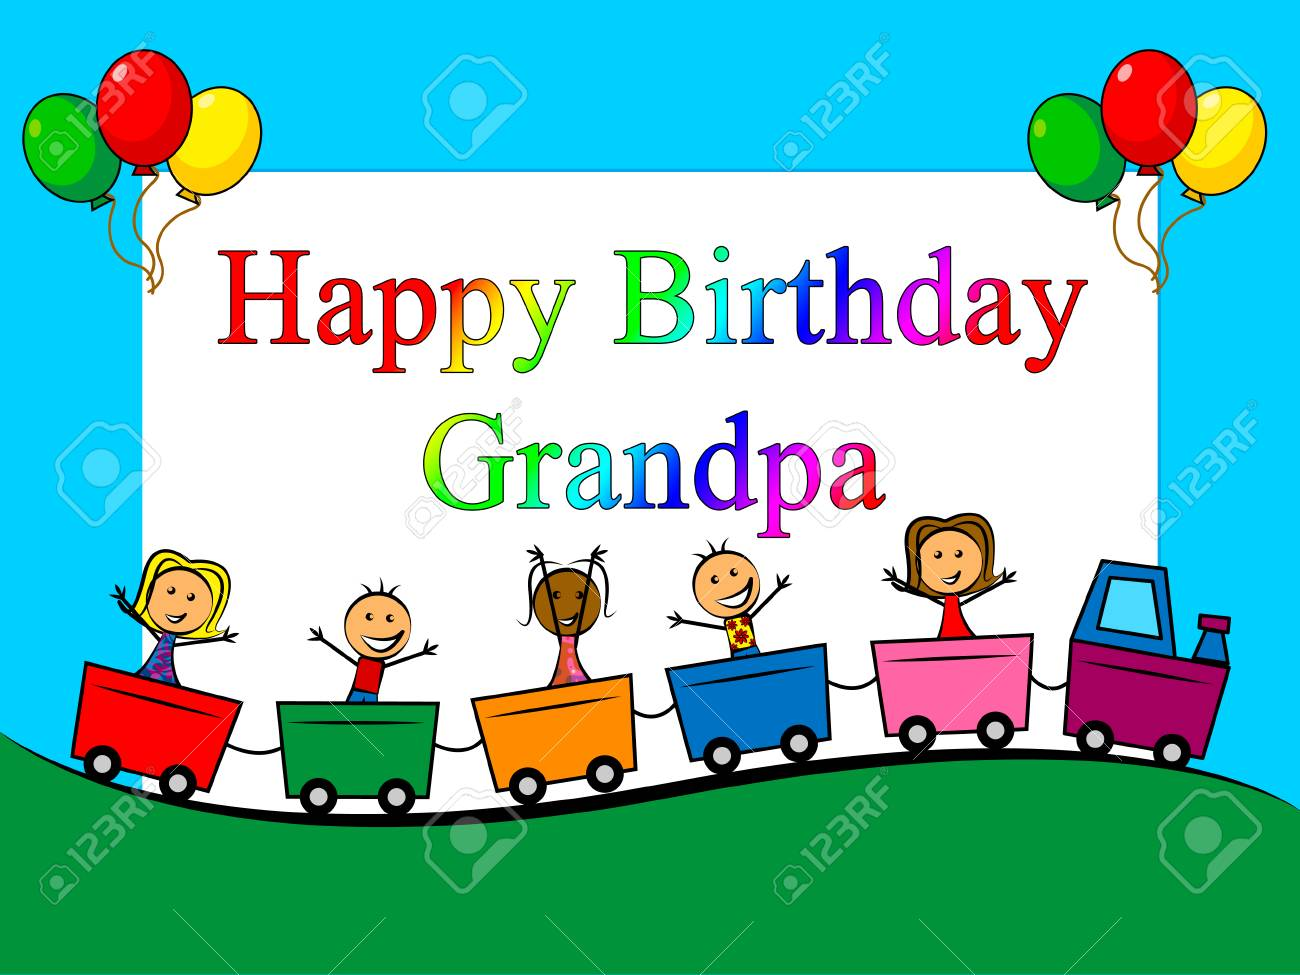 Happy Birthday Grandpa Card As Surprise Greeting For Grandad Best Wishes To Grandfather